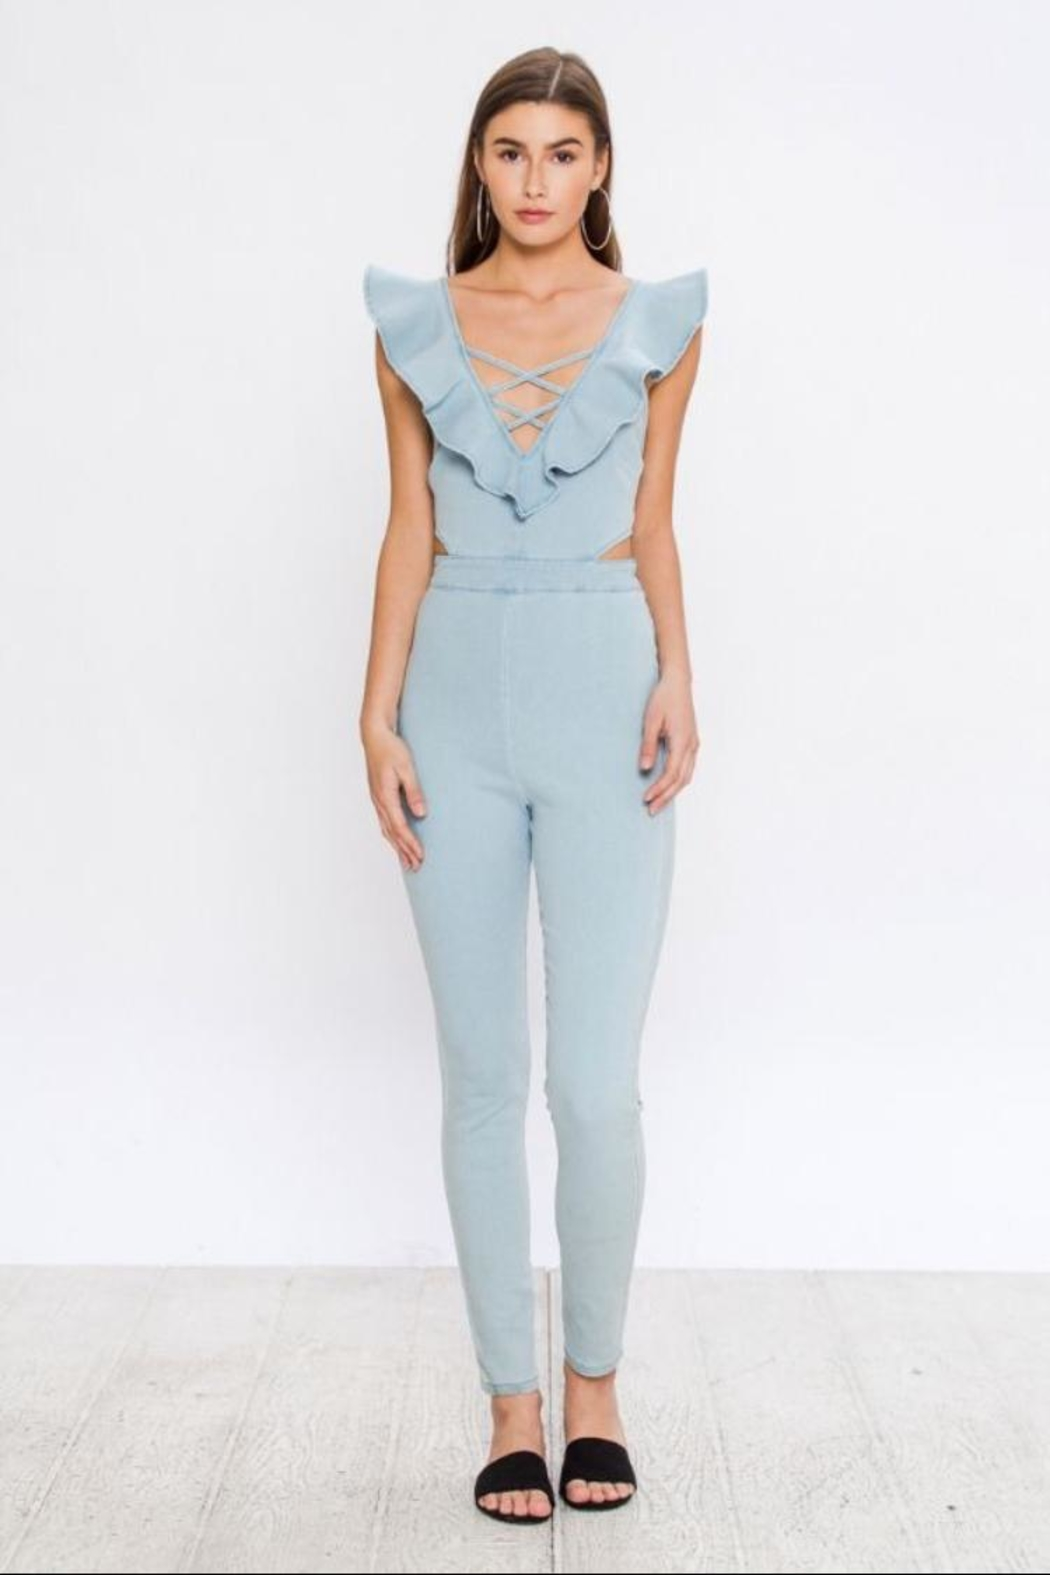 a5204149a4f Flying Tomato Ruffled Denim Jumpsuit from Los Angeles by Chikas ...